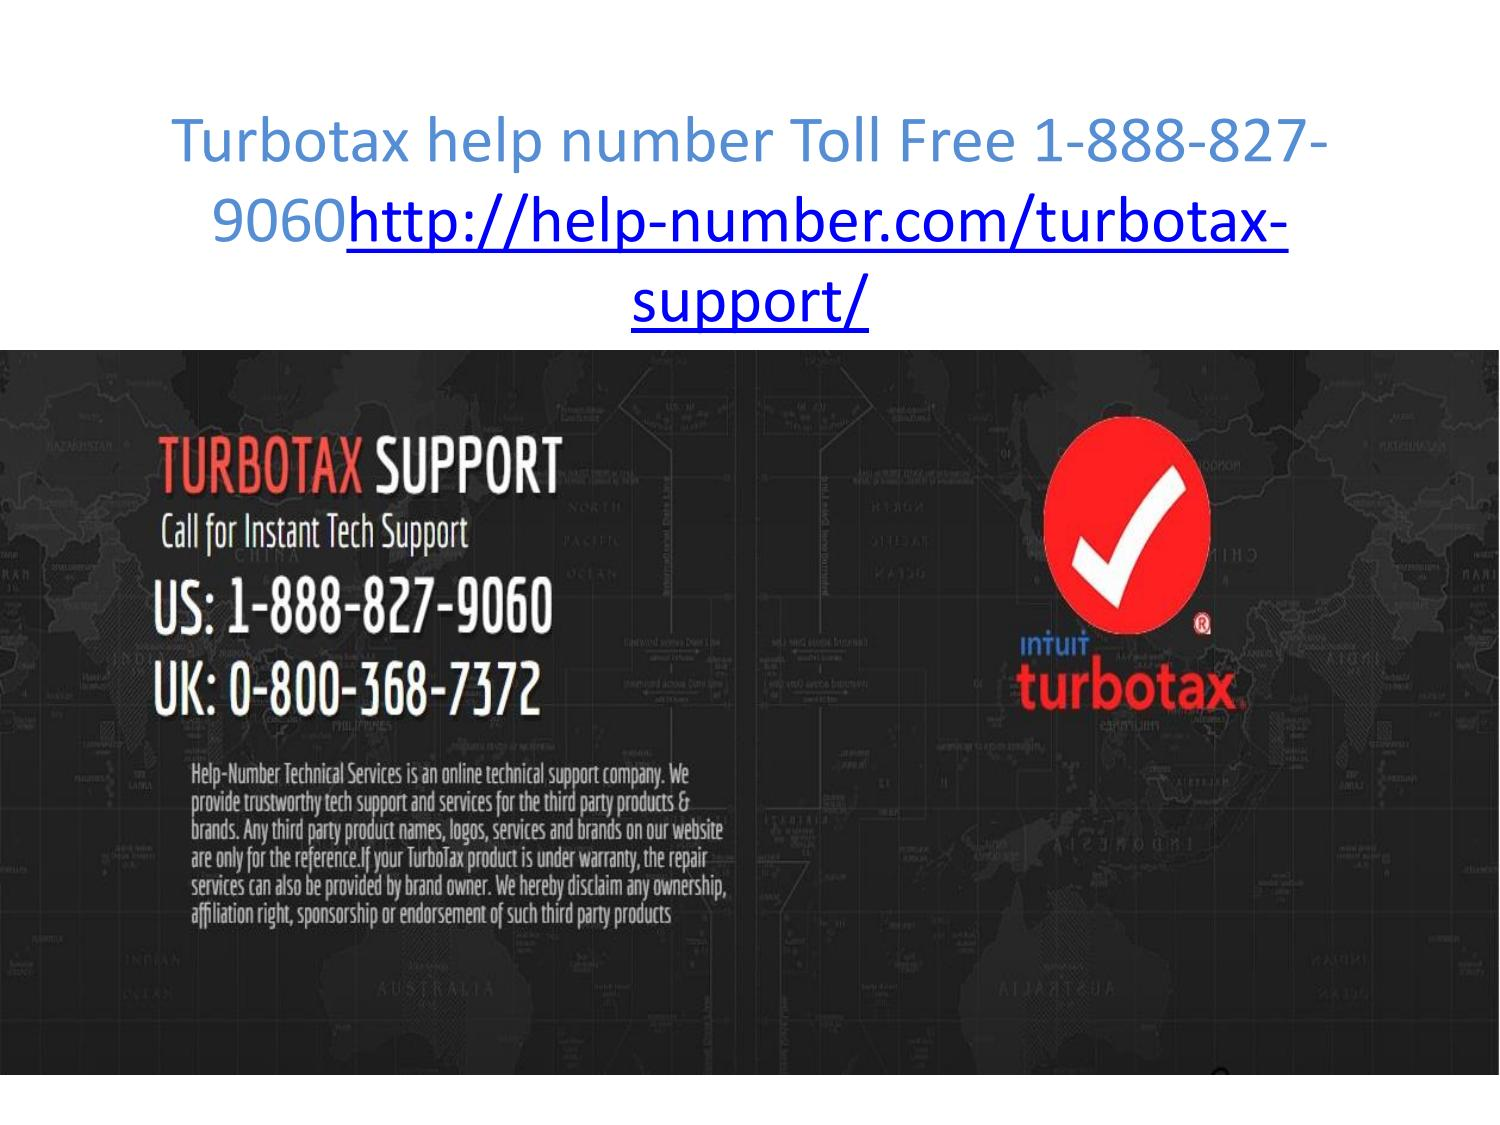 Turbotax help number Toll Free 1-888-827-9060 by Mark Henry